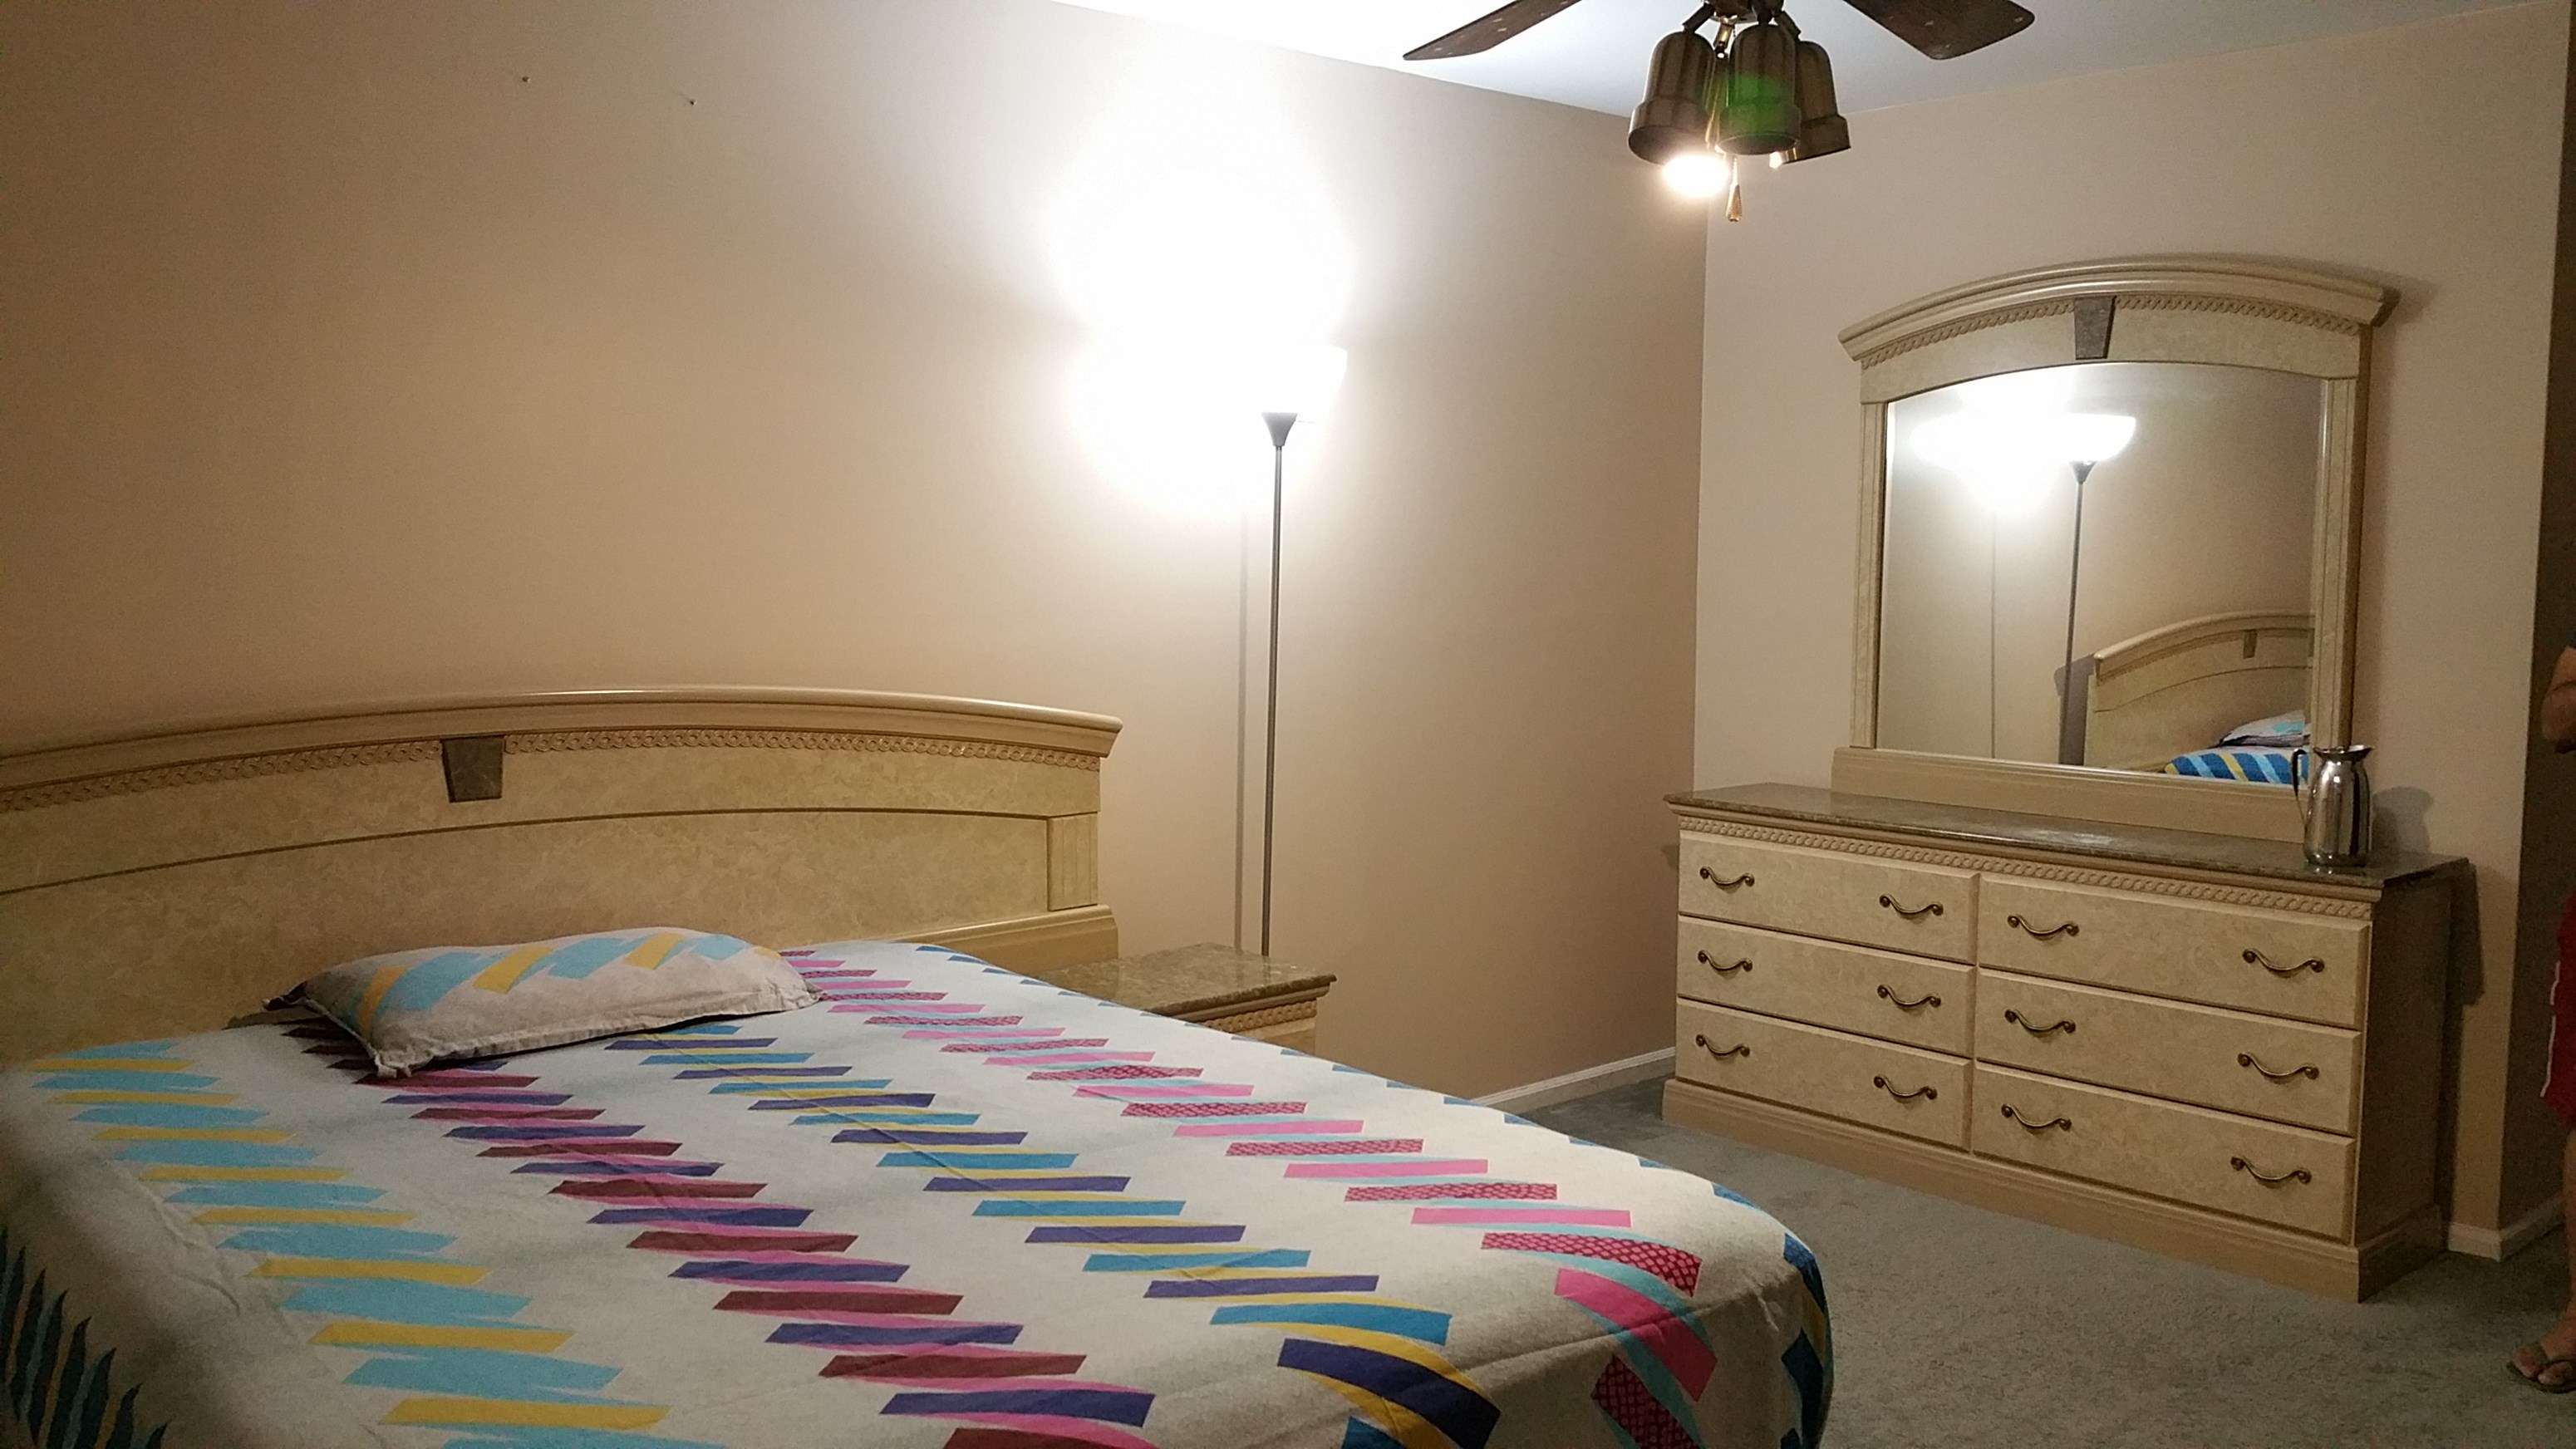 725 single room available in 3 bedroom and 2 5 bath